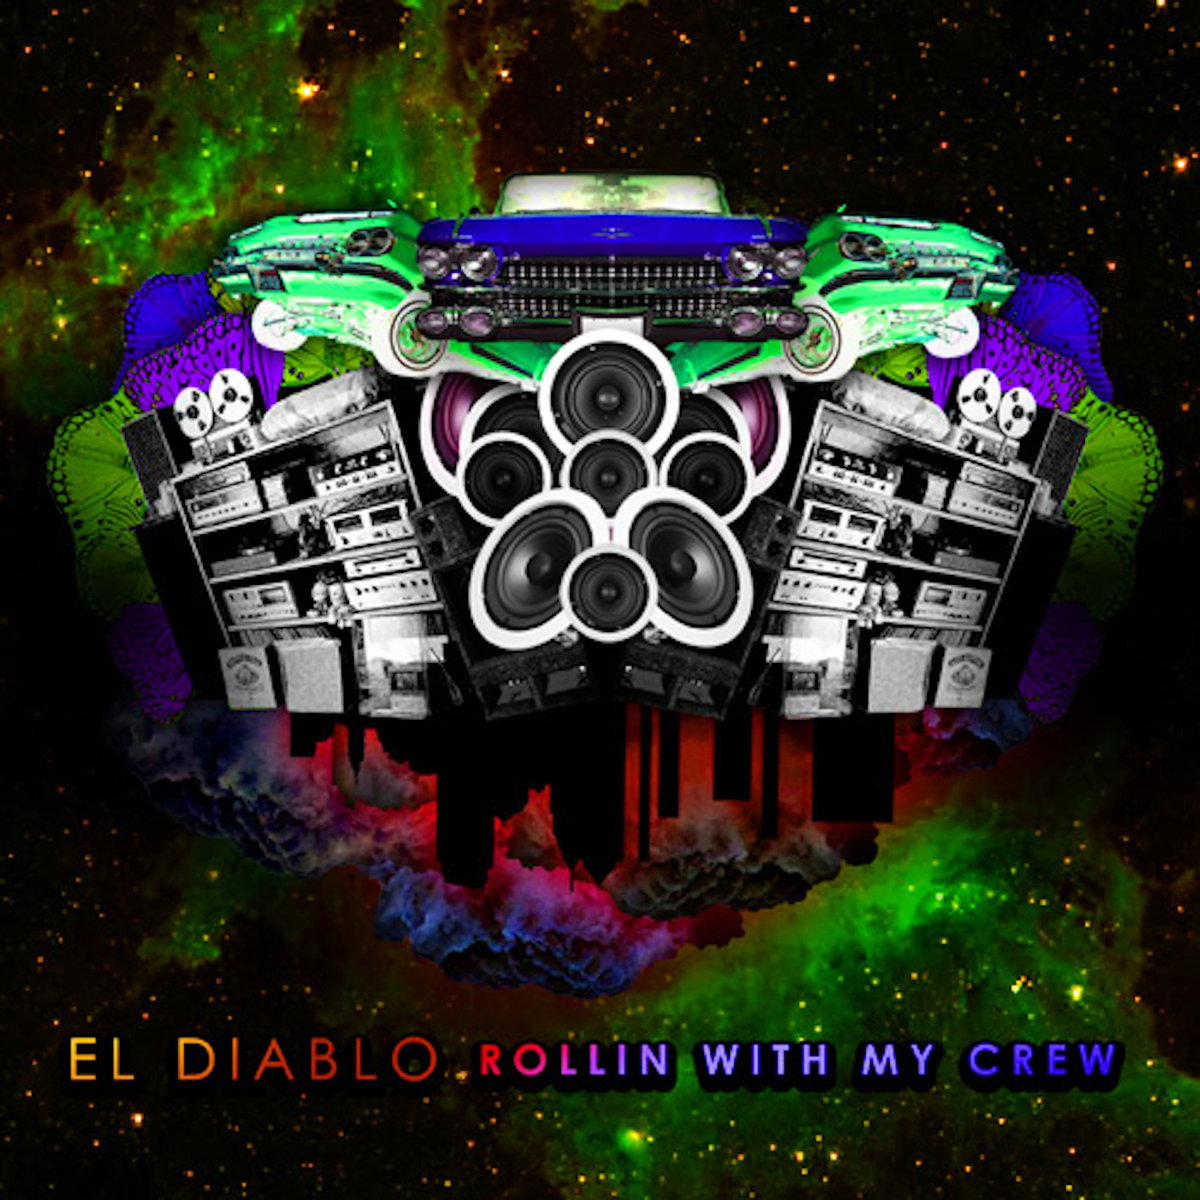 El Diablo & CI - Jezebeth @ 'Rollin With My Crew' album (electronic, dubstep)